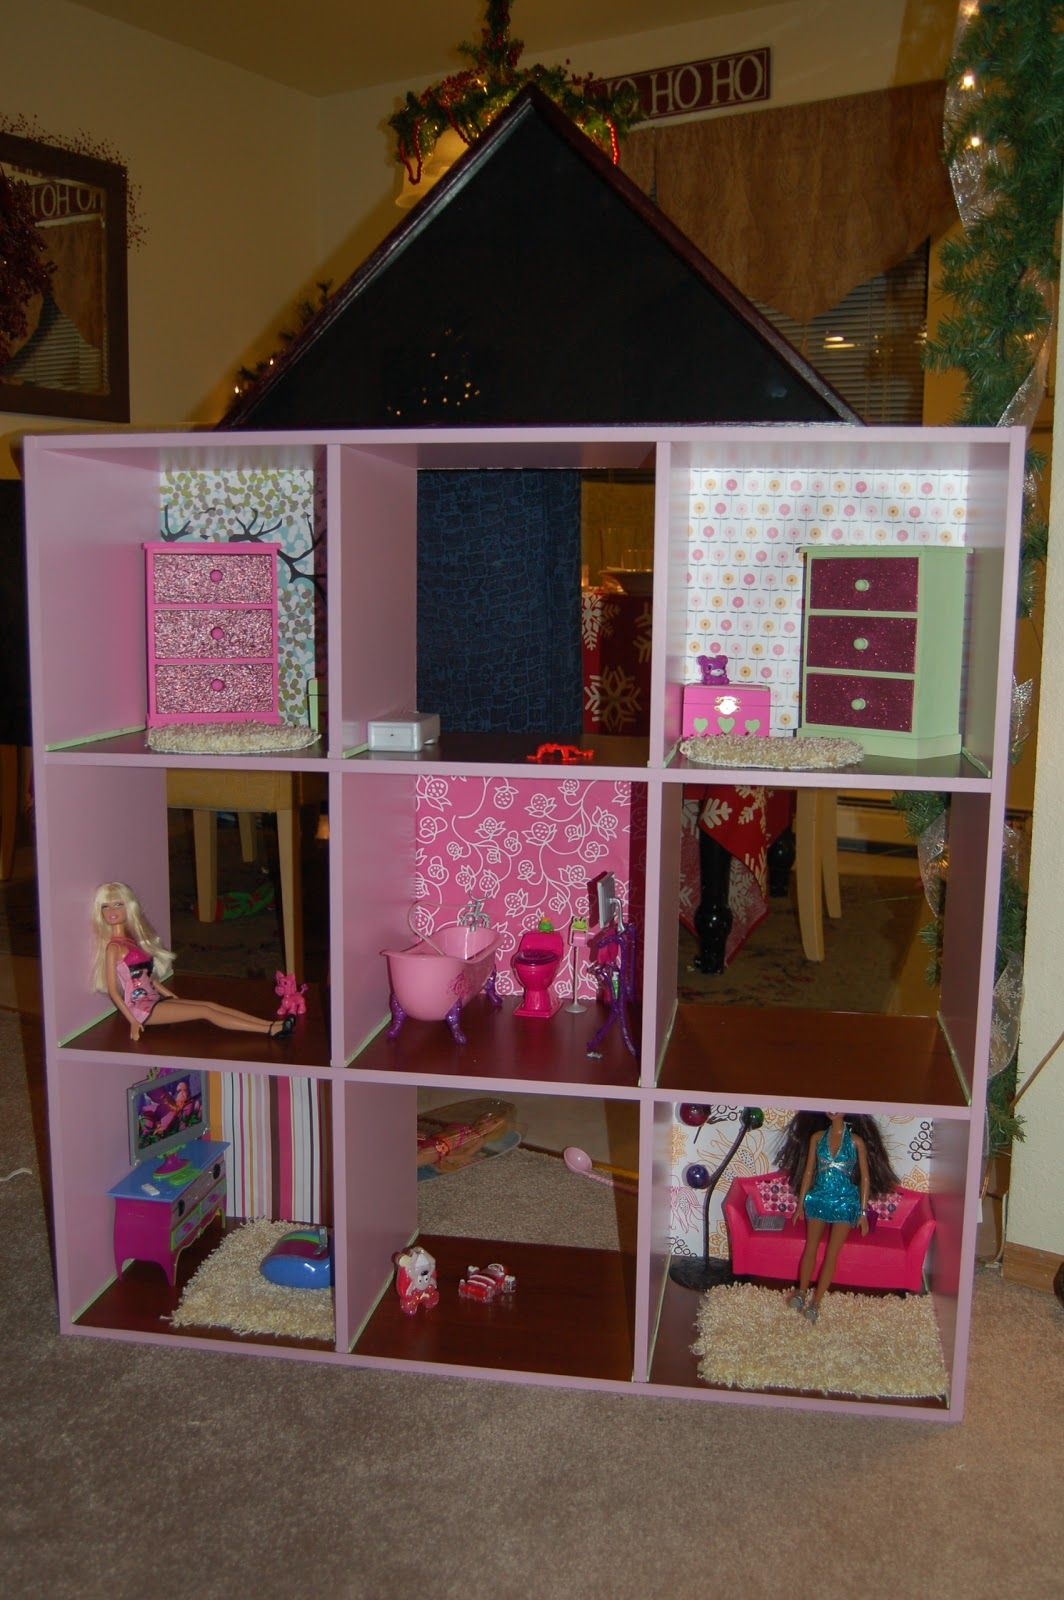 Pin by Amanda Russell-Sconiers on Dollhouse | Barbie doll ... Doll House Plans Menards on metal shop house plans, ranch house plans, lowe's house plans, belk house plans, marriott house plans, small 3 bedrooms house plans, house floor plans, walk out basement house plans, amazon house plans, hallmark house plans, single story house plans, carter lumber house plans, secret passage house plans, do it best house plans, loft house plans, pottery barn house plans, brady house plans, simple 4 bedroom house plans, ebay house plans, ikea house plans,